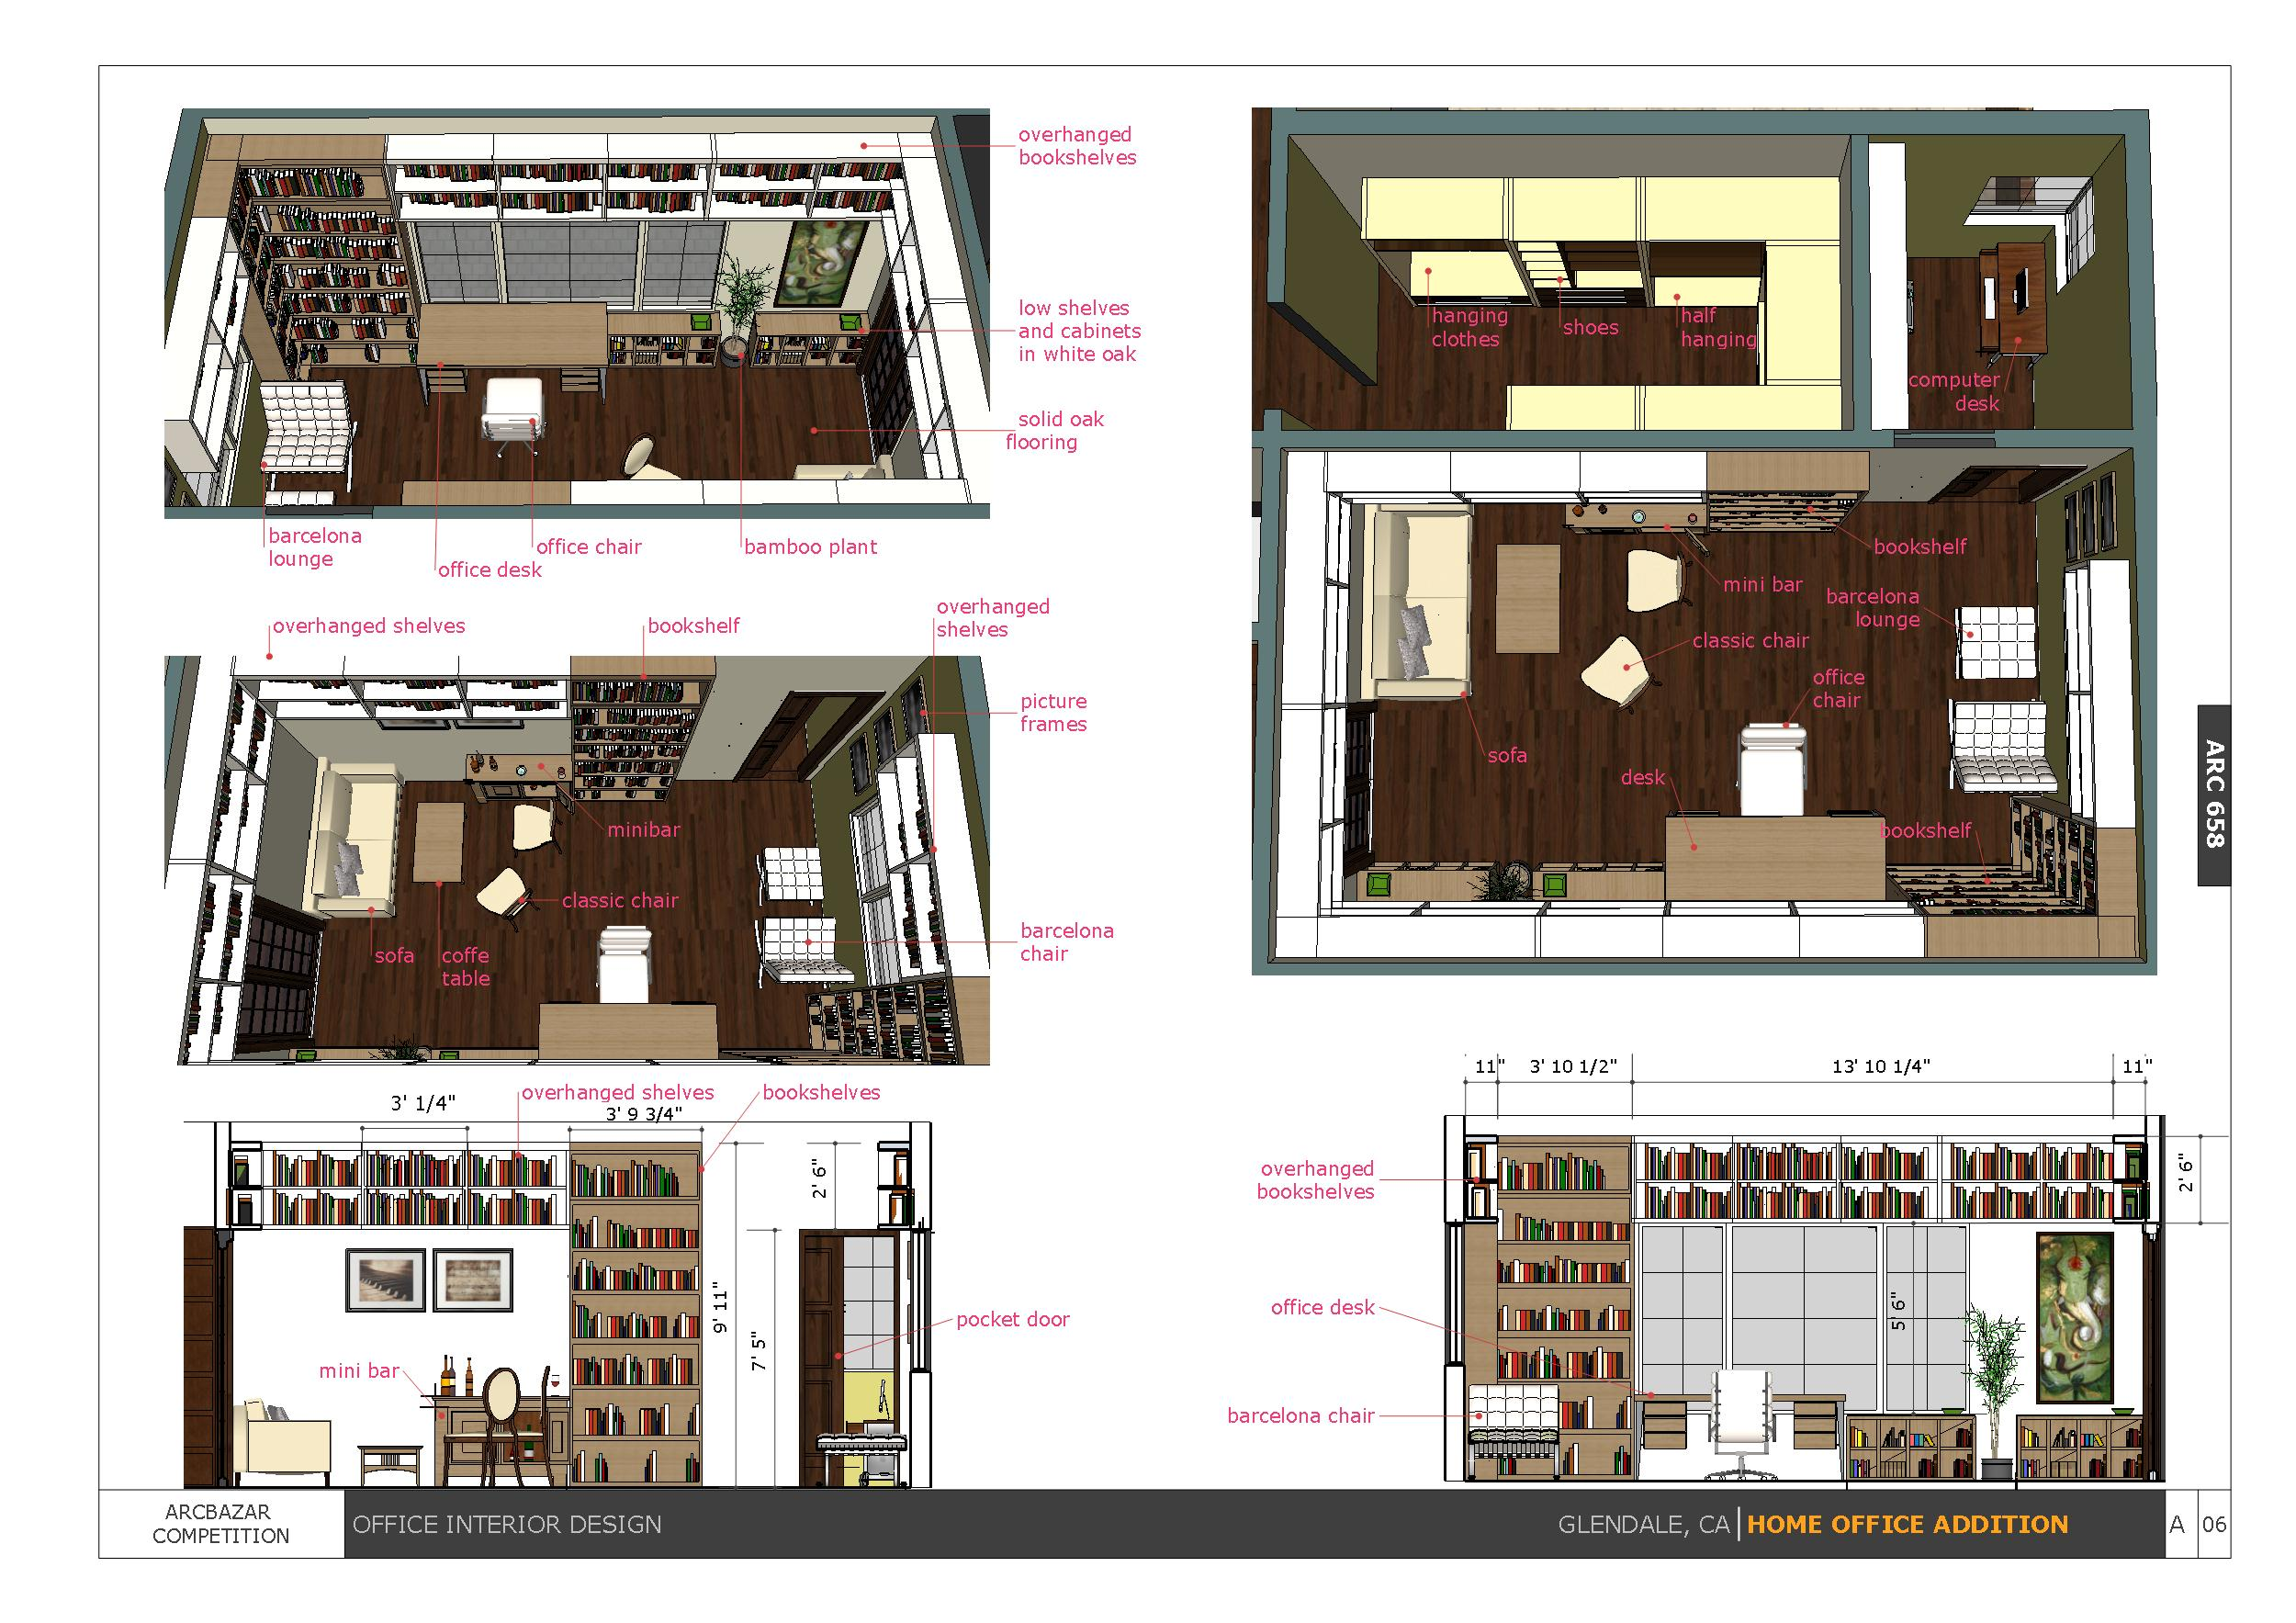 Viewdesignerproject projectadditions plans for Home office additions